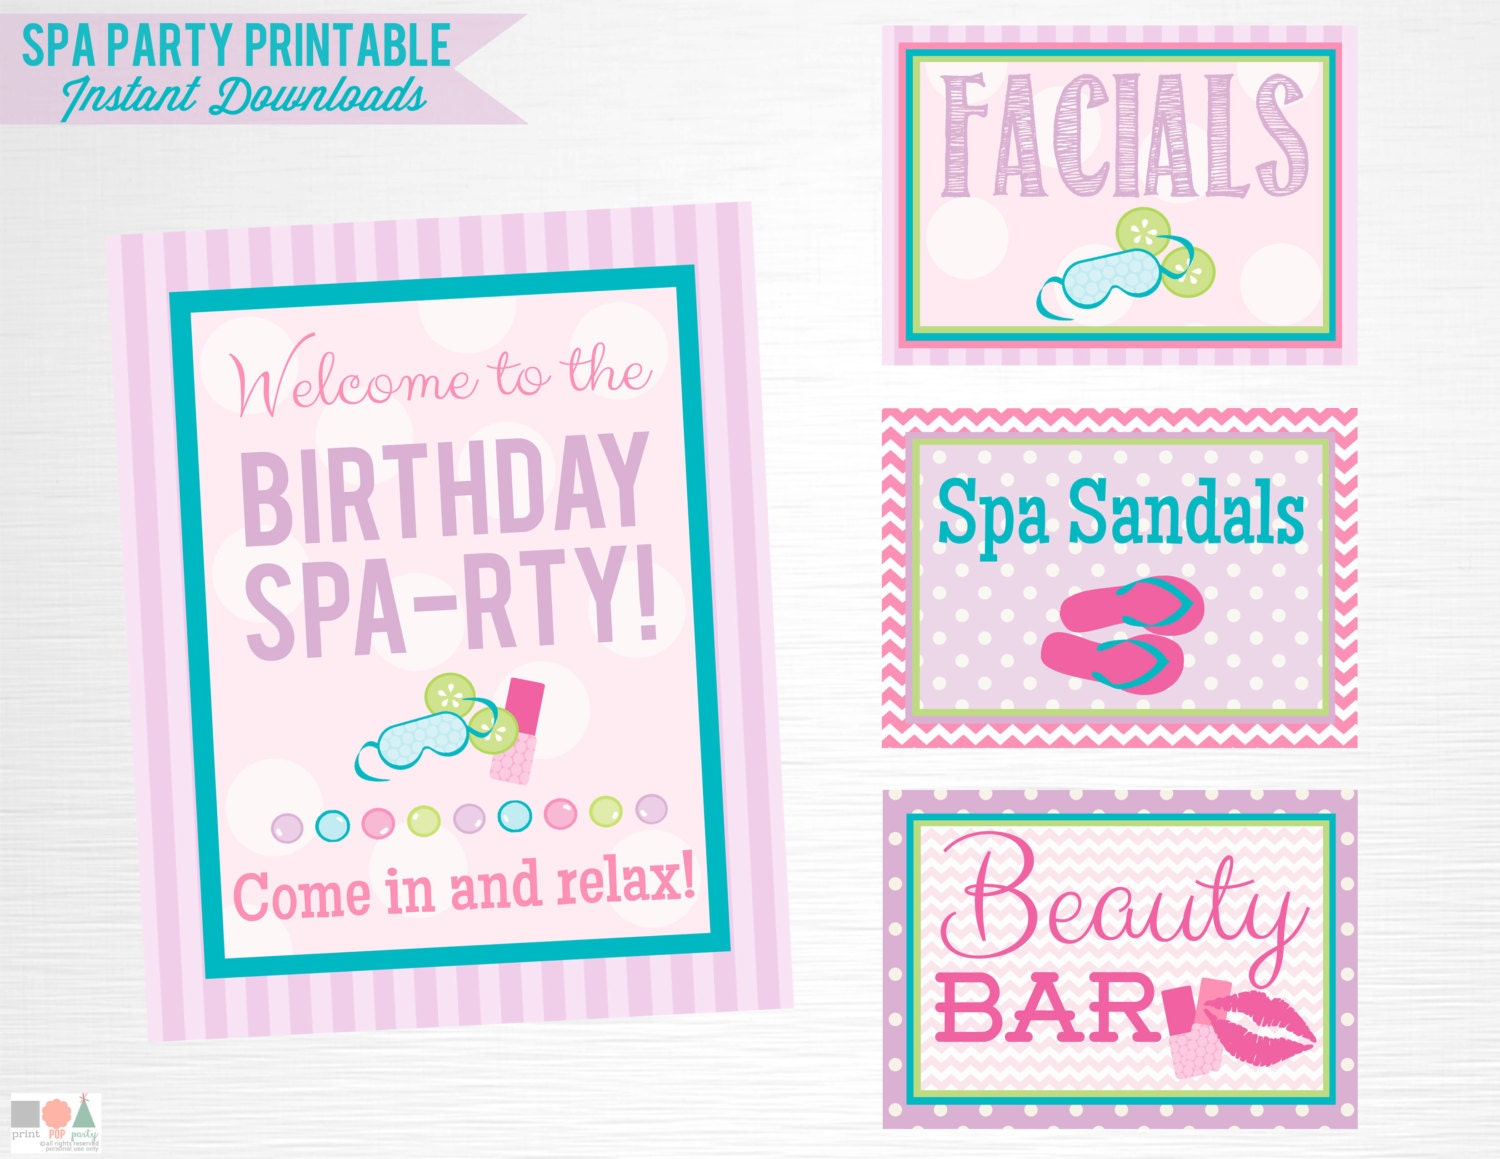 This is a photo of Stupendous Party Signs Printable